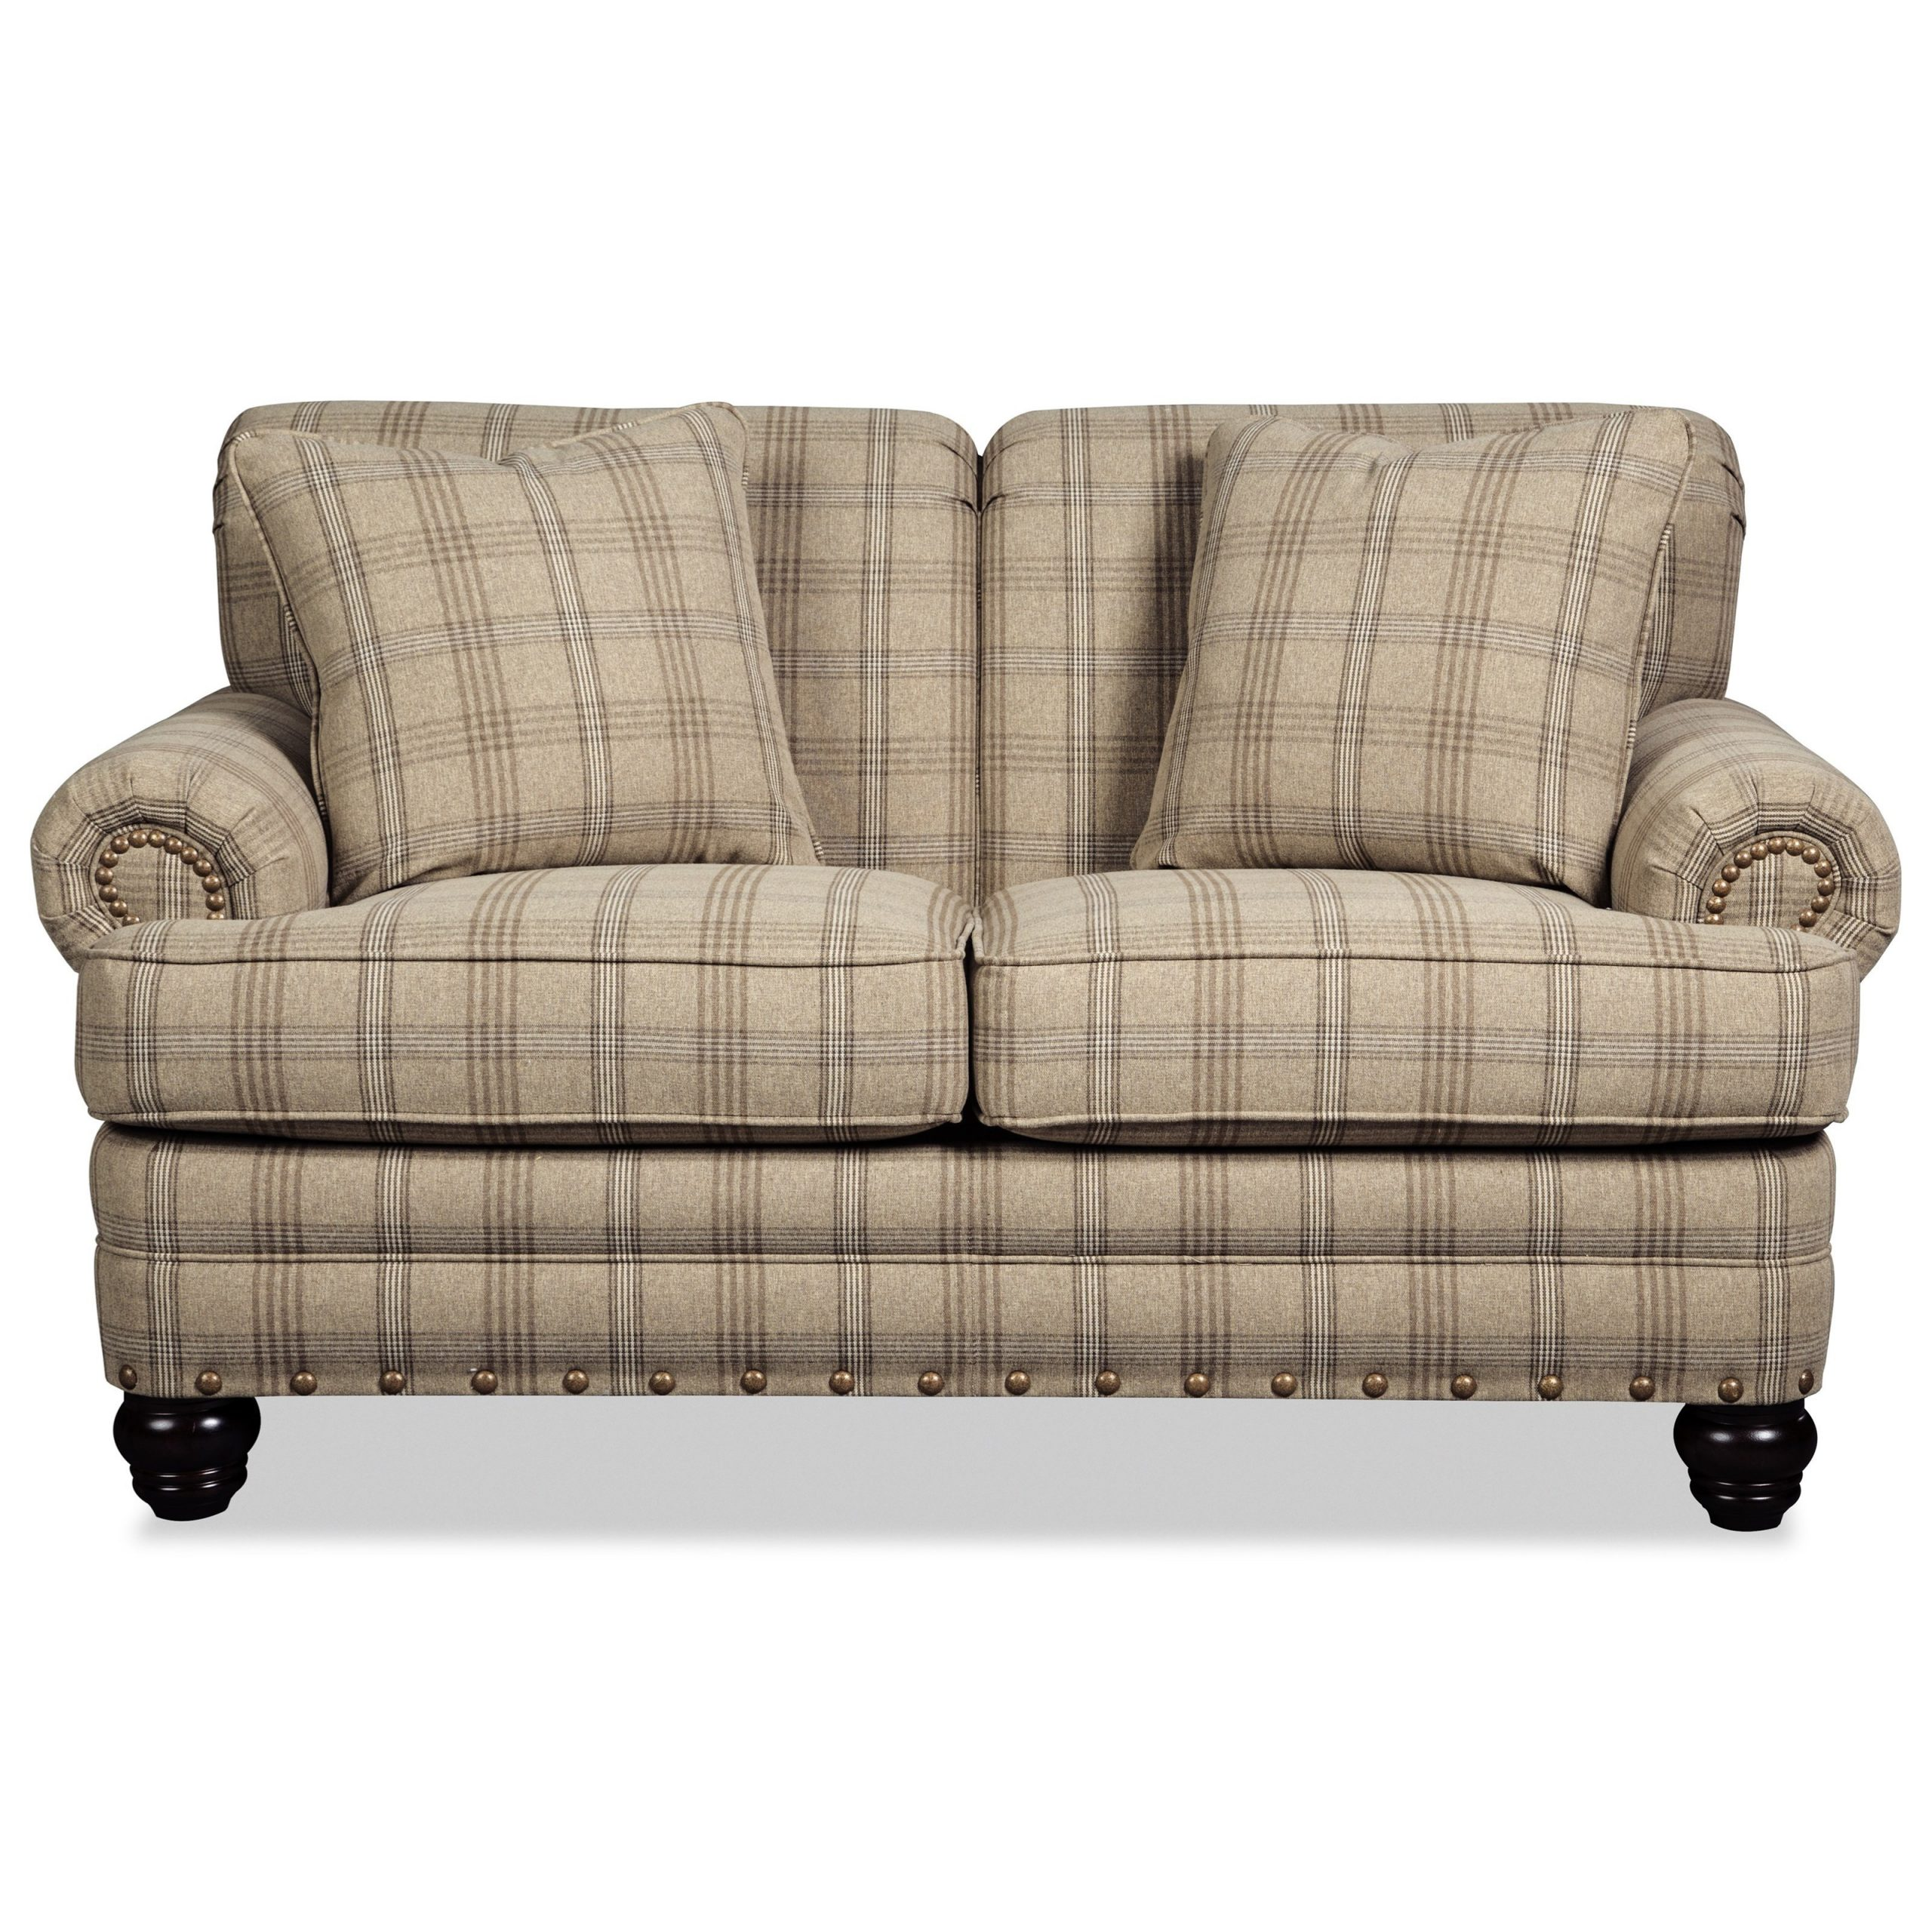 Craftmaster 7281 Traditional Loveseat With Rolled Arms And Pertaining To Favorite Van Dyke Loveseats (View 23 of 25)